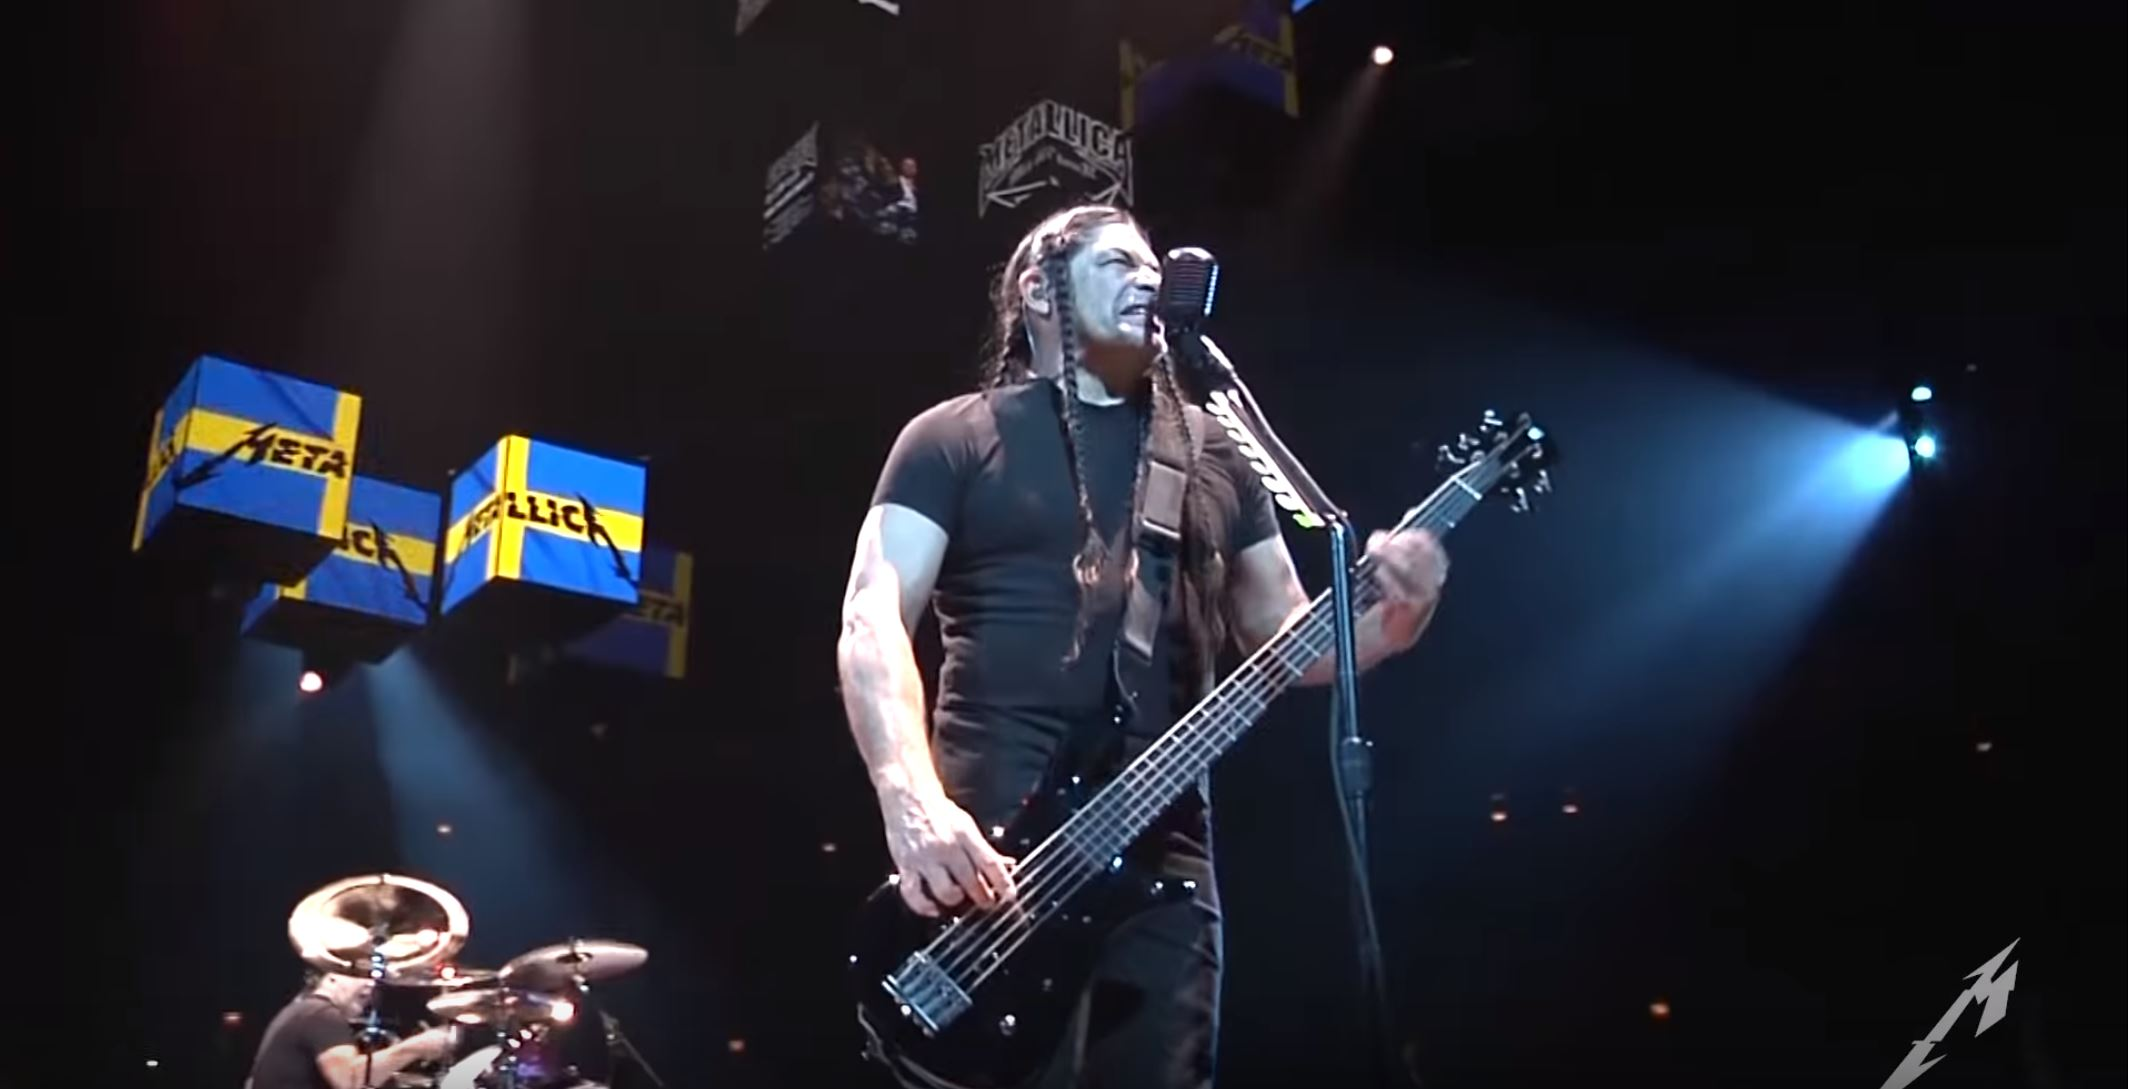 Metallica Performs 'Spit Out the Bone' Live in Stockholm Sweden